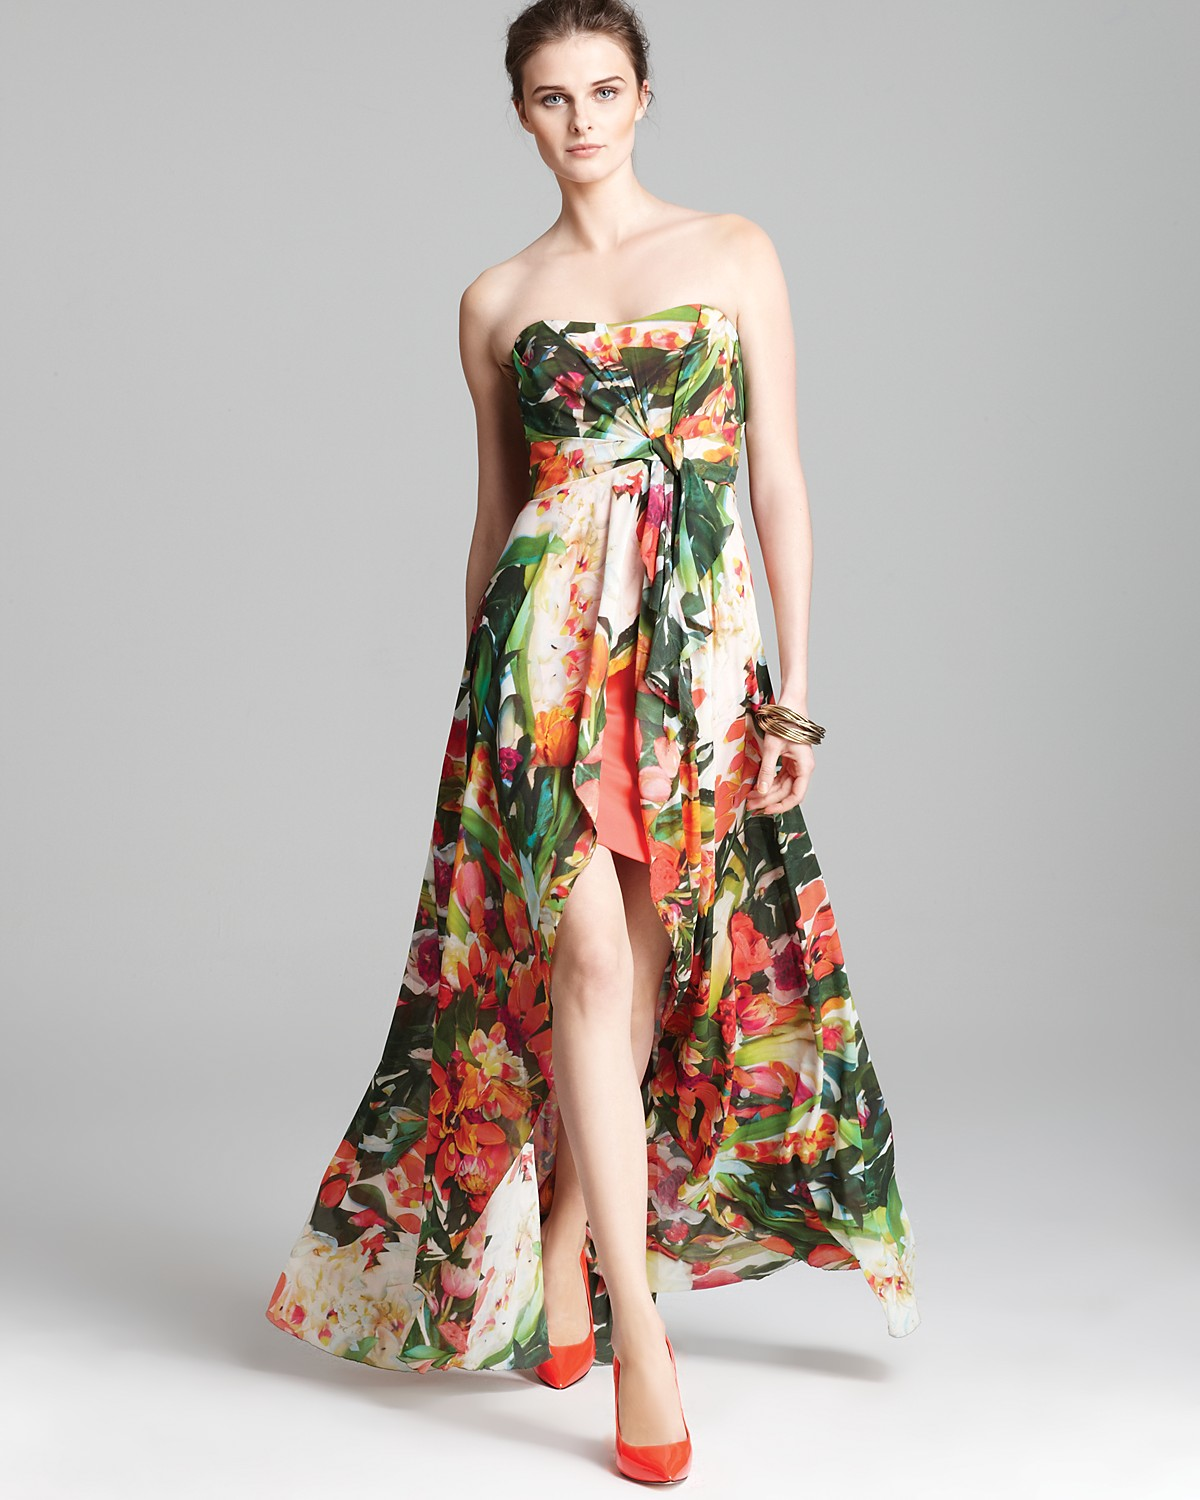 Floral High Low Dress | Dressed Up Girl